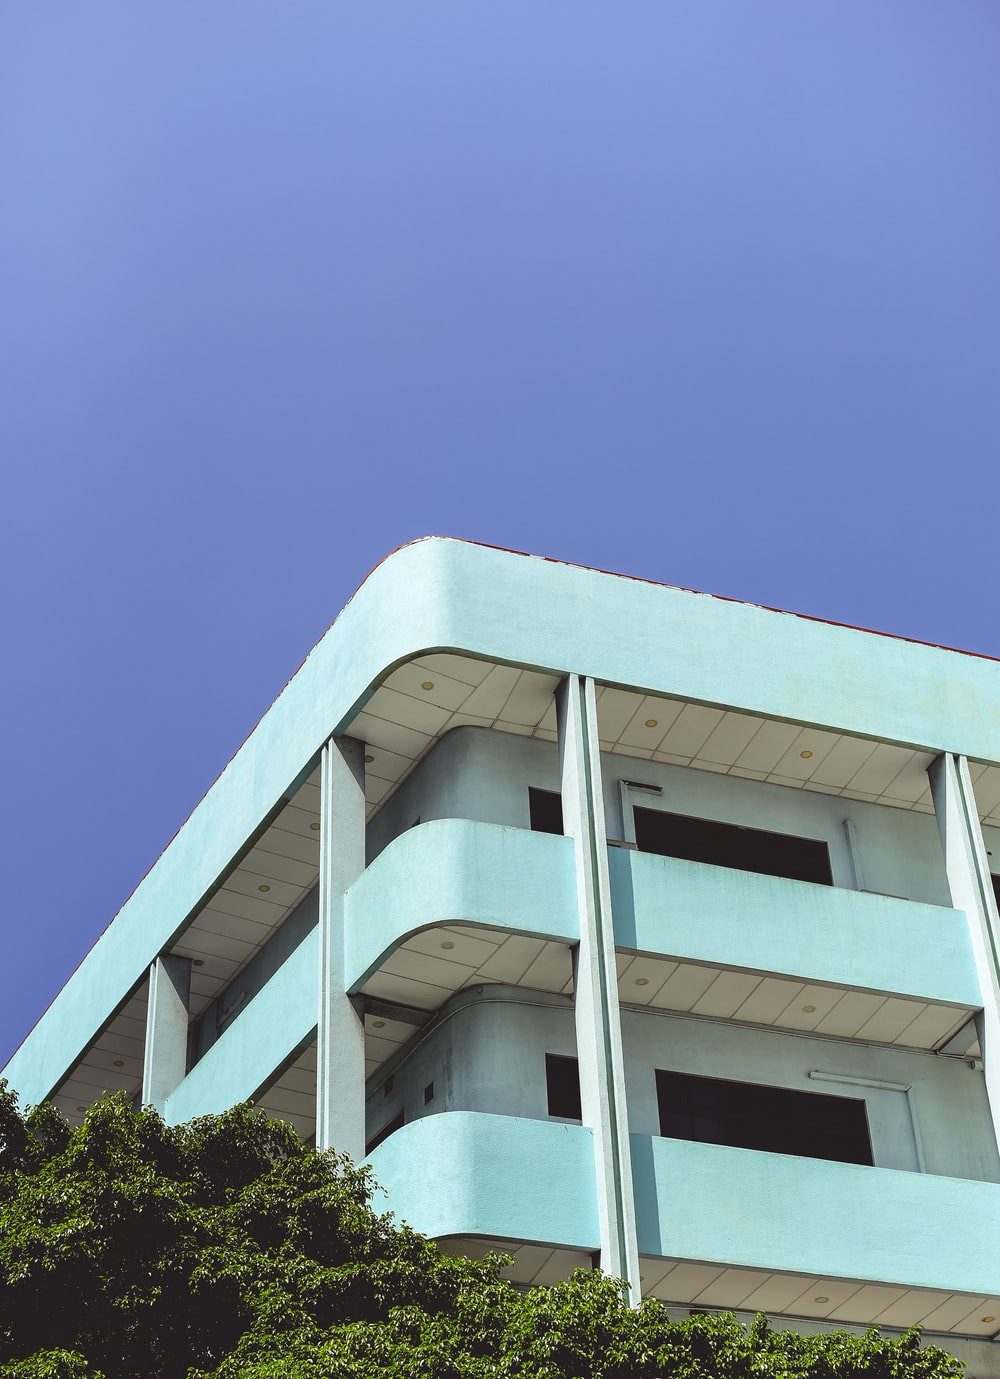 low angle photography of teal building